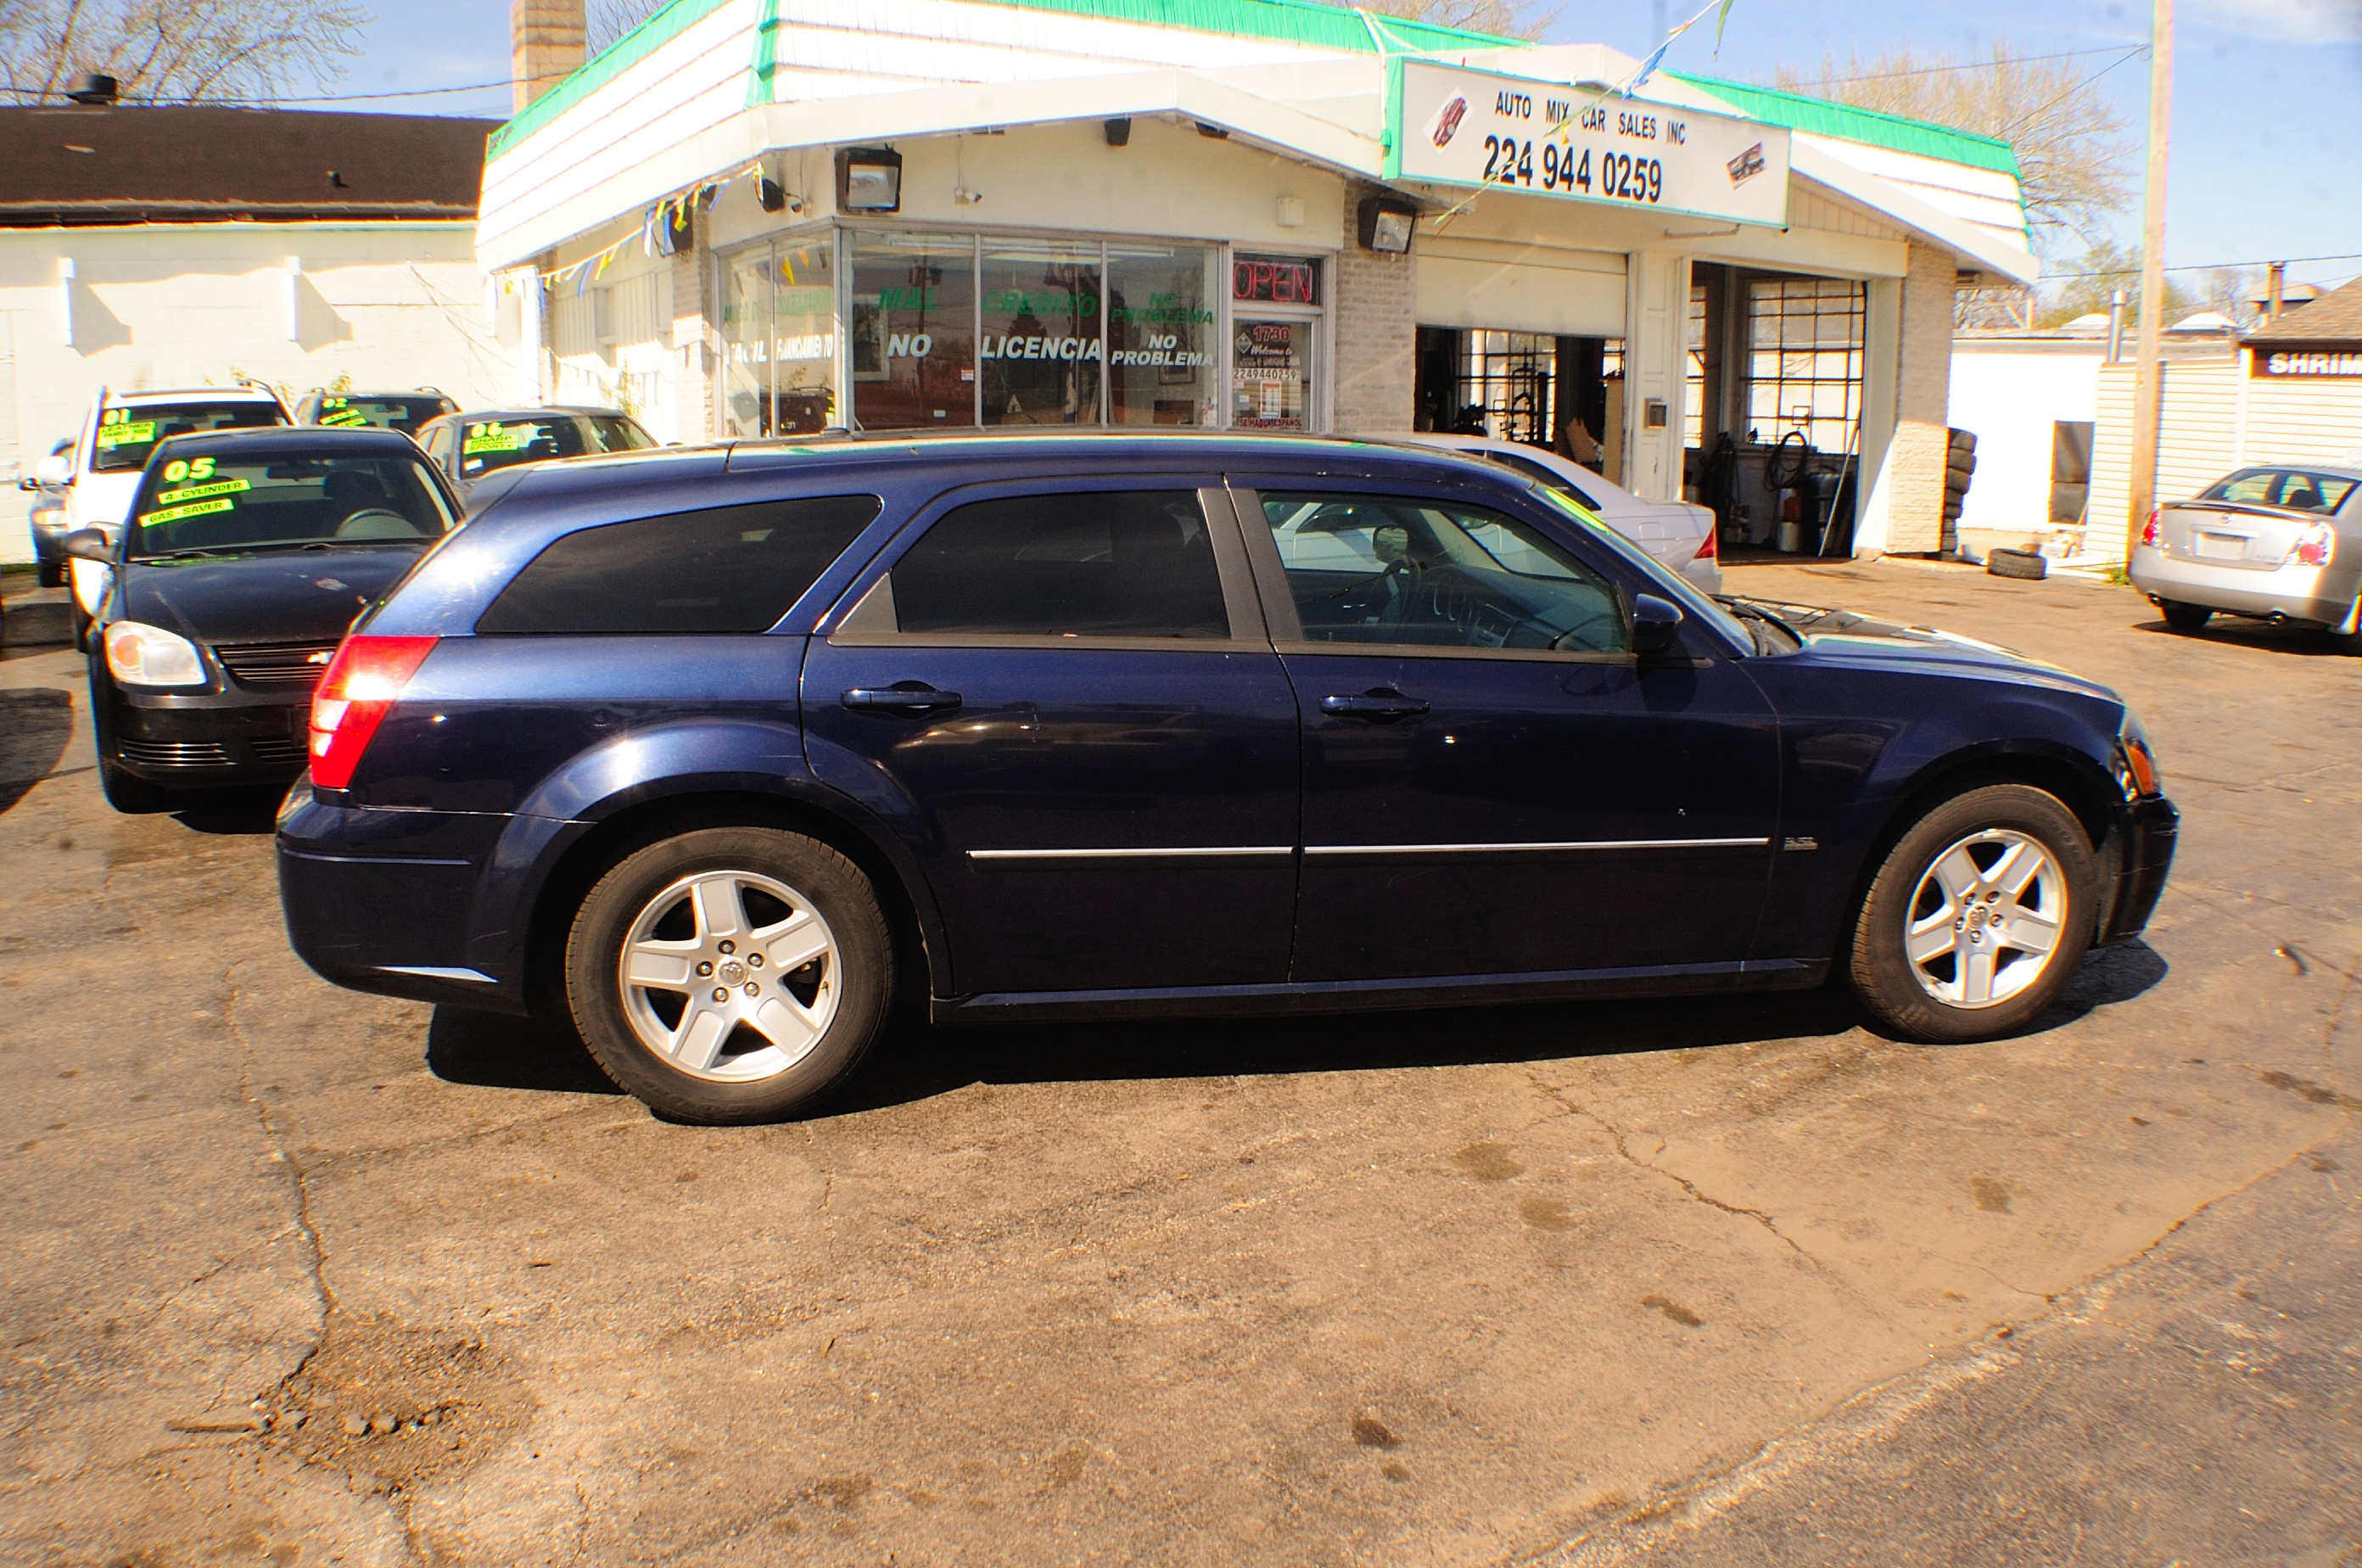 2006 Dodge Magnum SXT Blue 4Dr Wagon used car sale Antioch Zion Waukegan Lake County Illinois